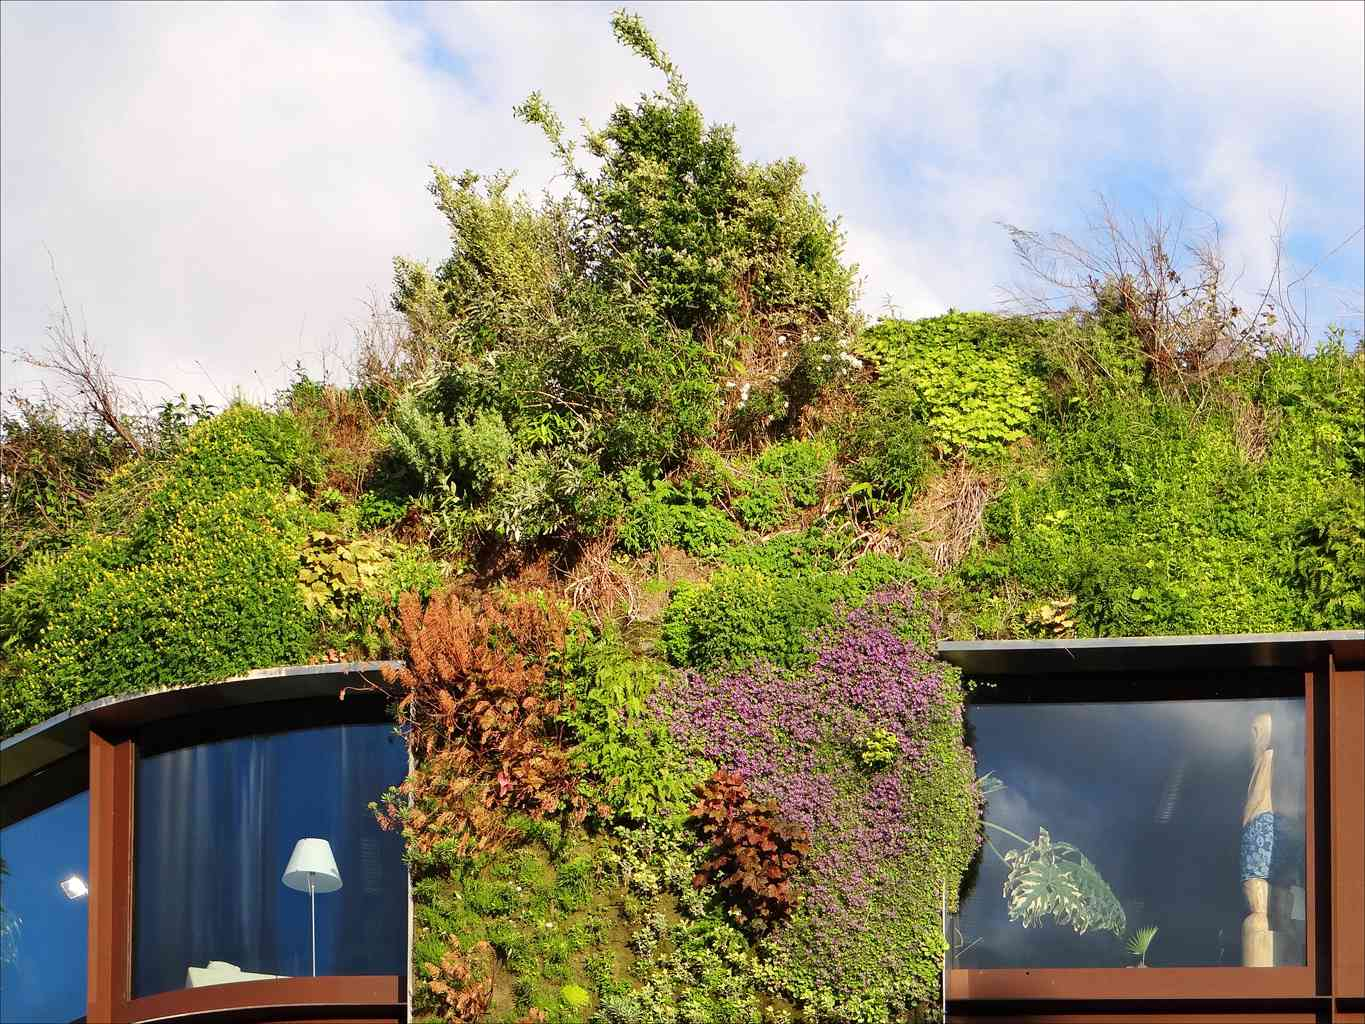 A living wall full of plants on a building.